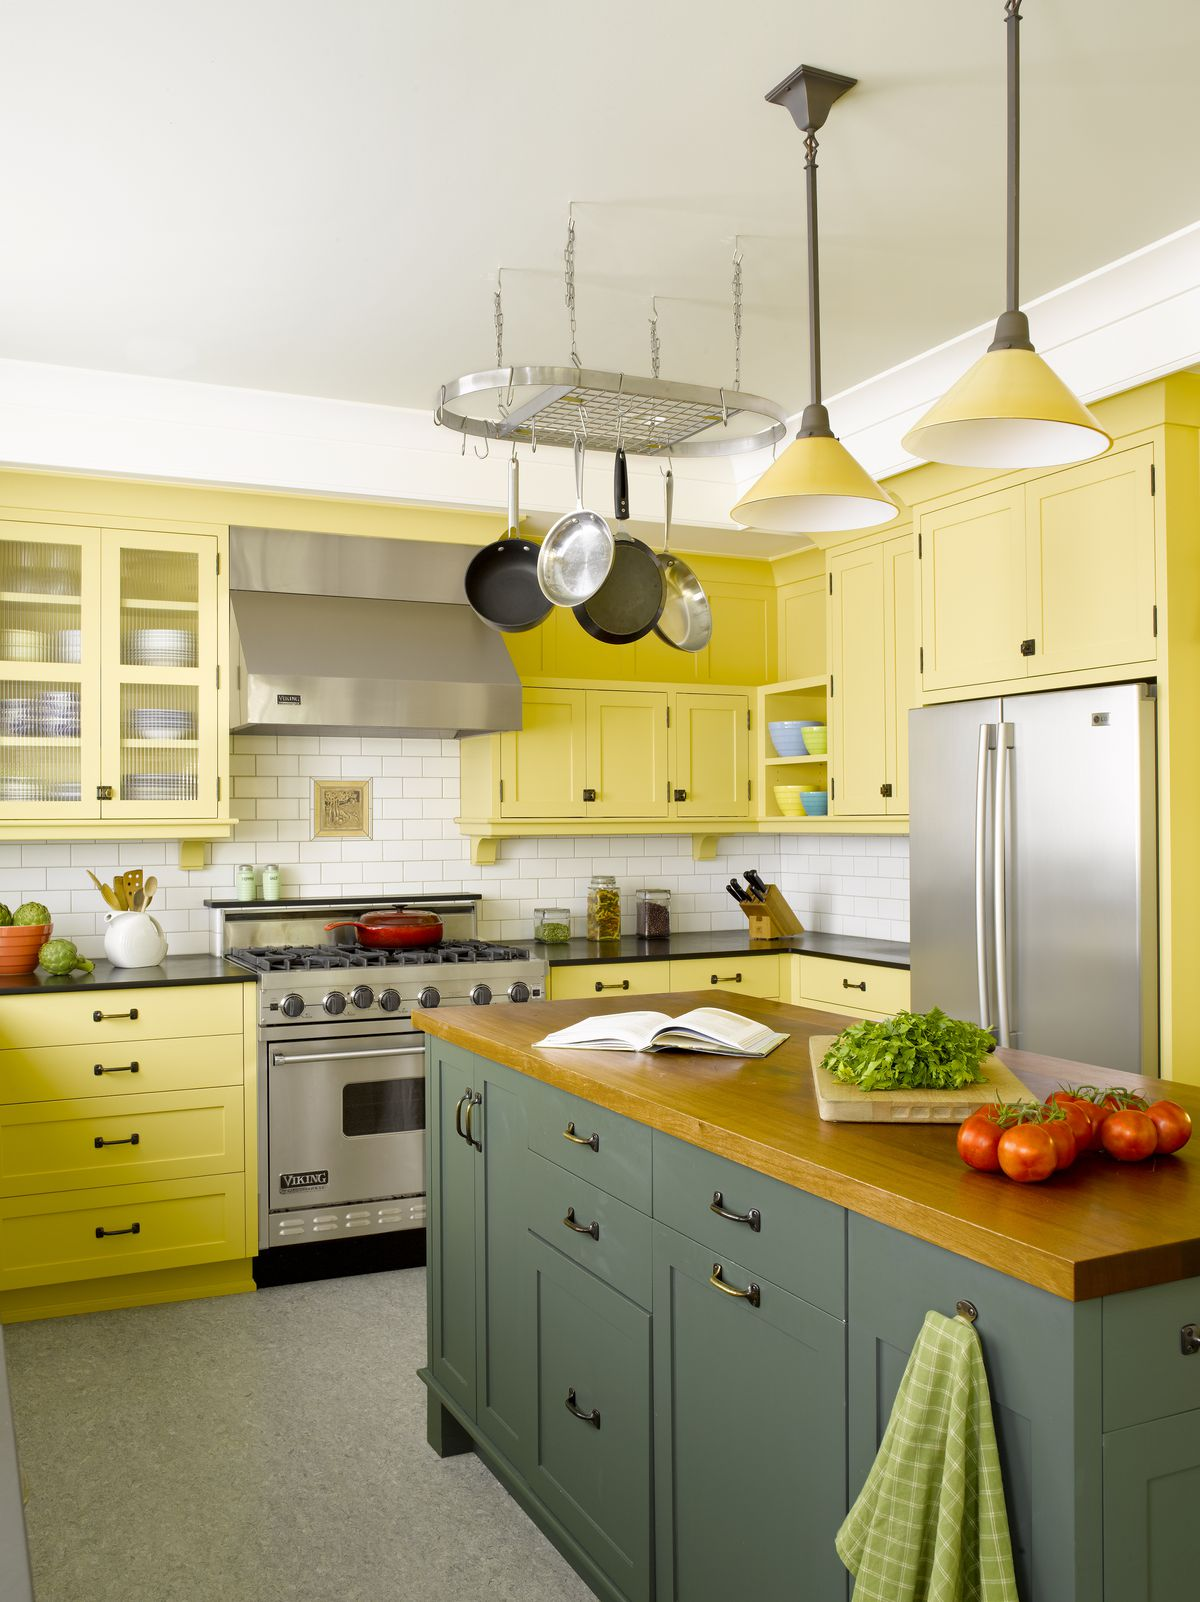 Update craftsman style wood countertop in colorful kitchen.